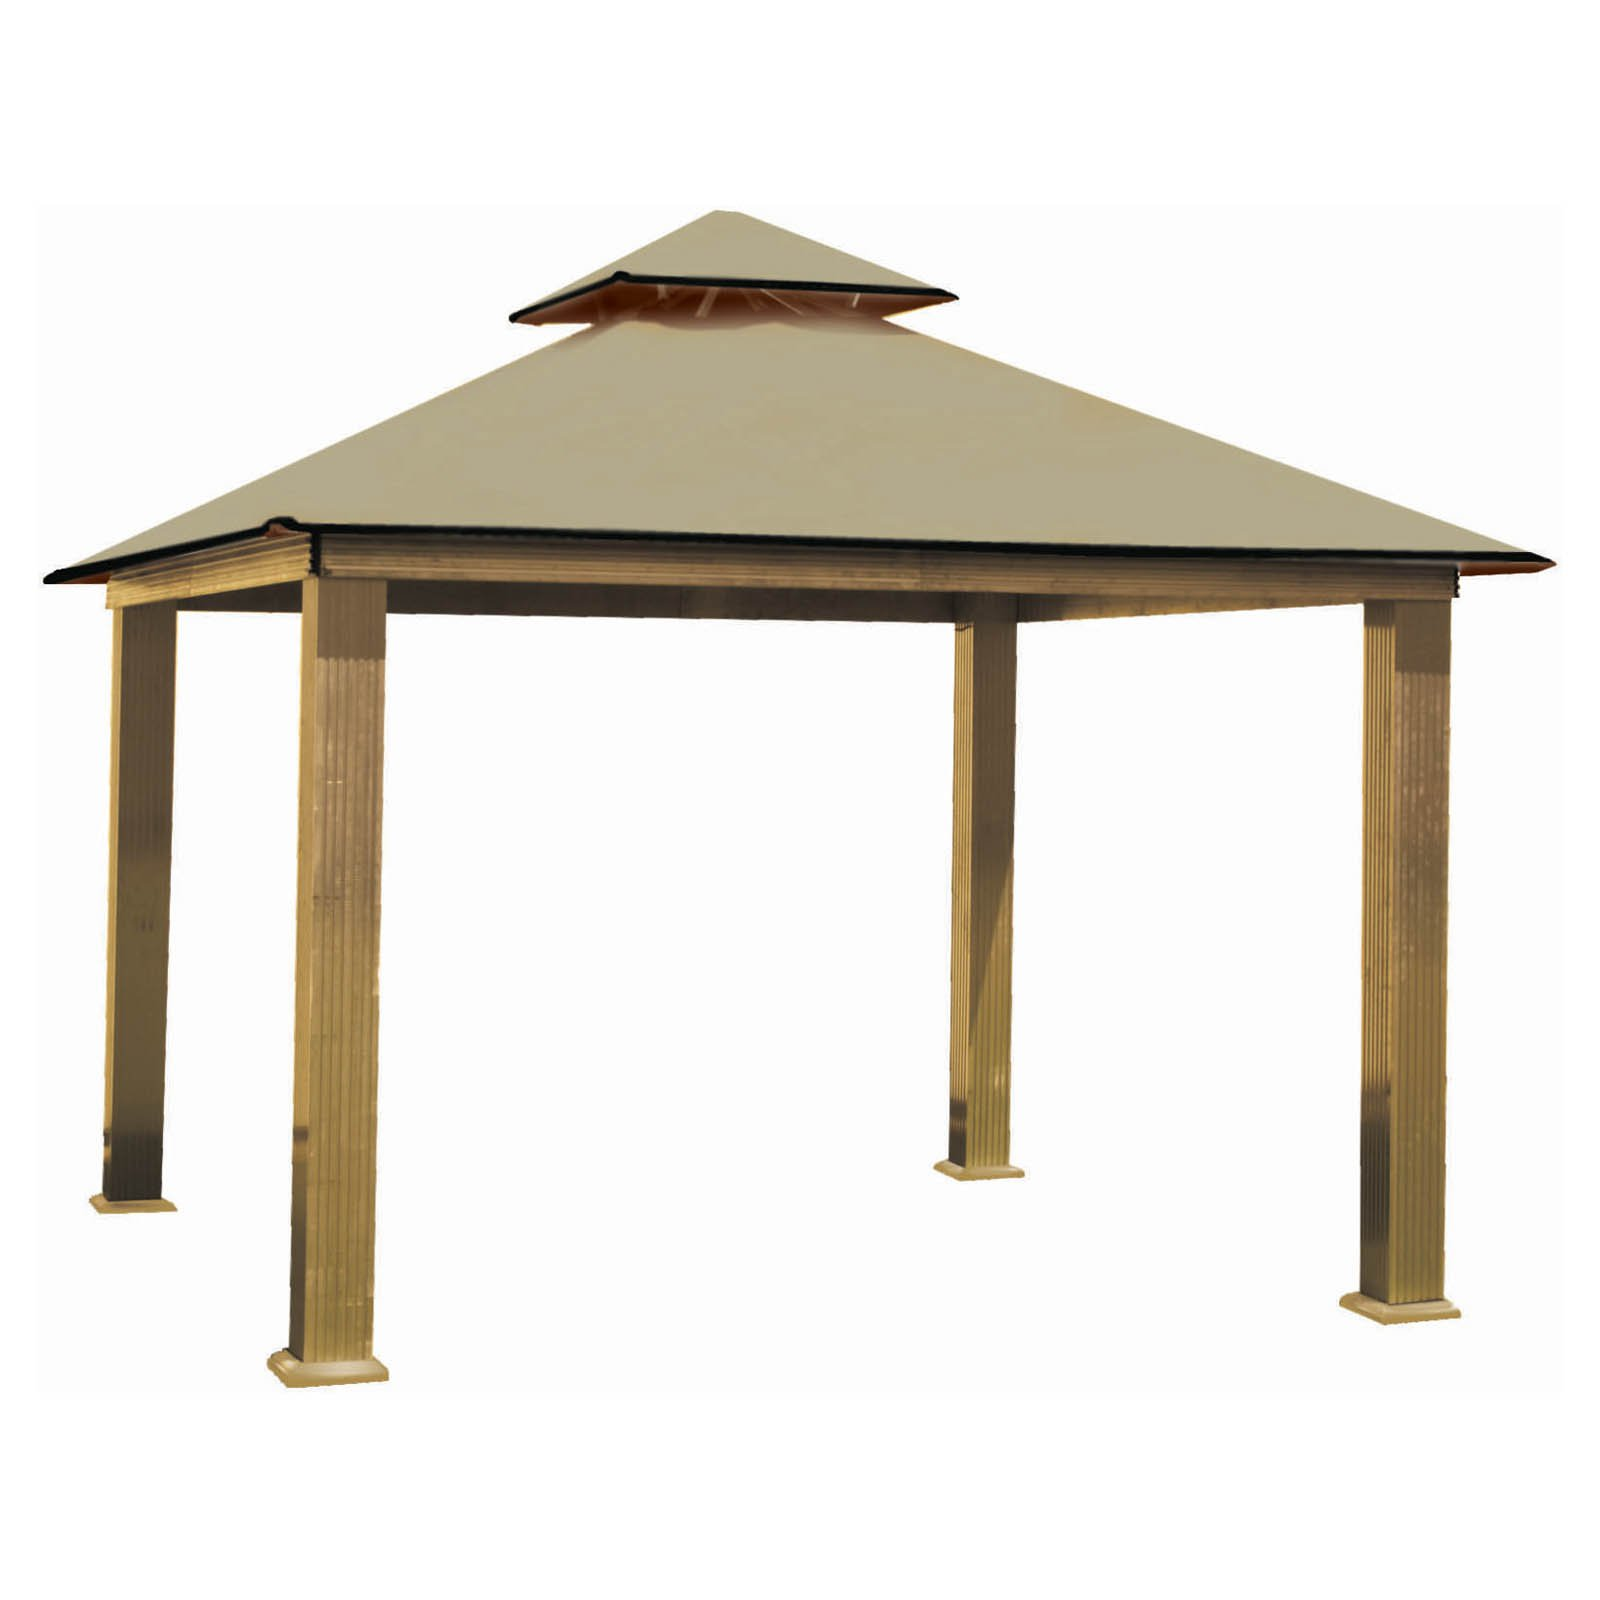 ACACIA by Riverstone Industries STC Seville 12-ft. Gazebo Replacement Canopy